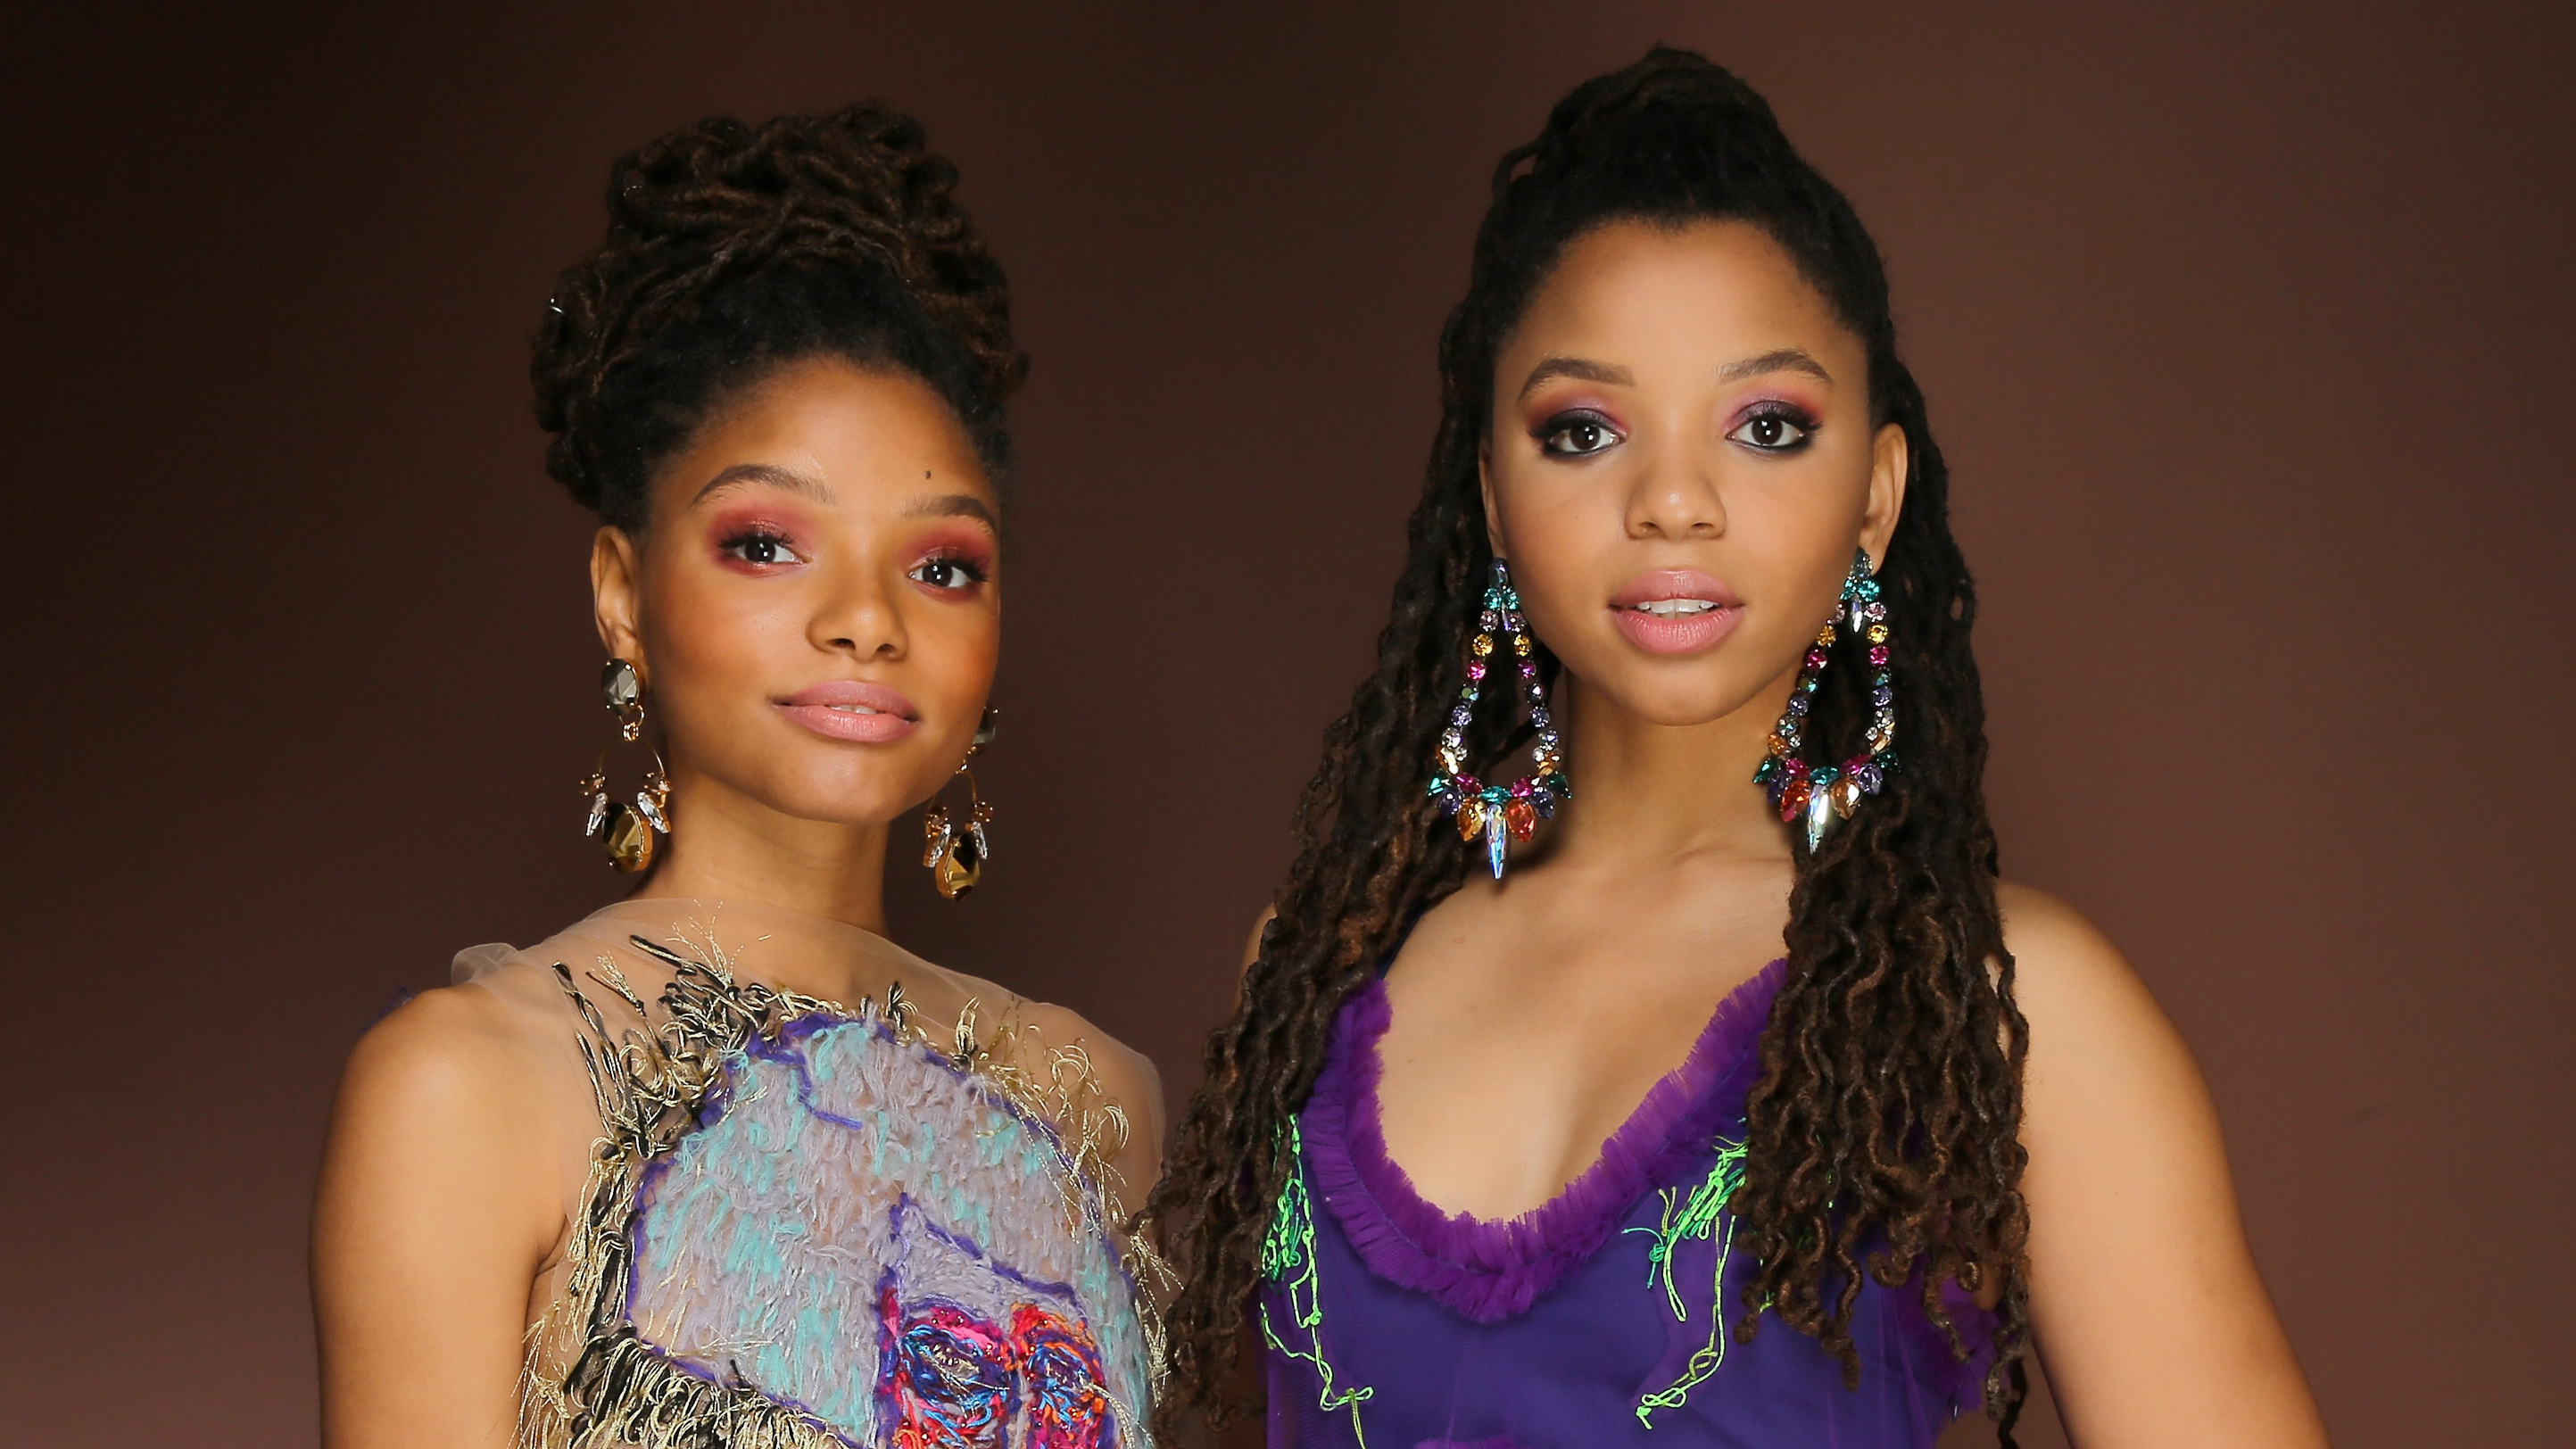 Essence 11th Annual Black Women In Hollywood Awards Gala – Portraits